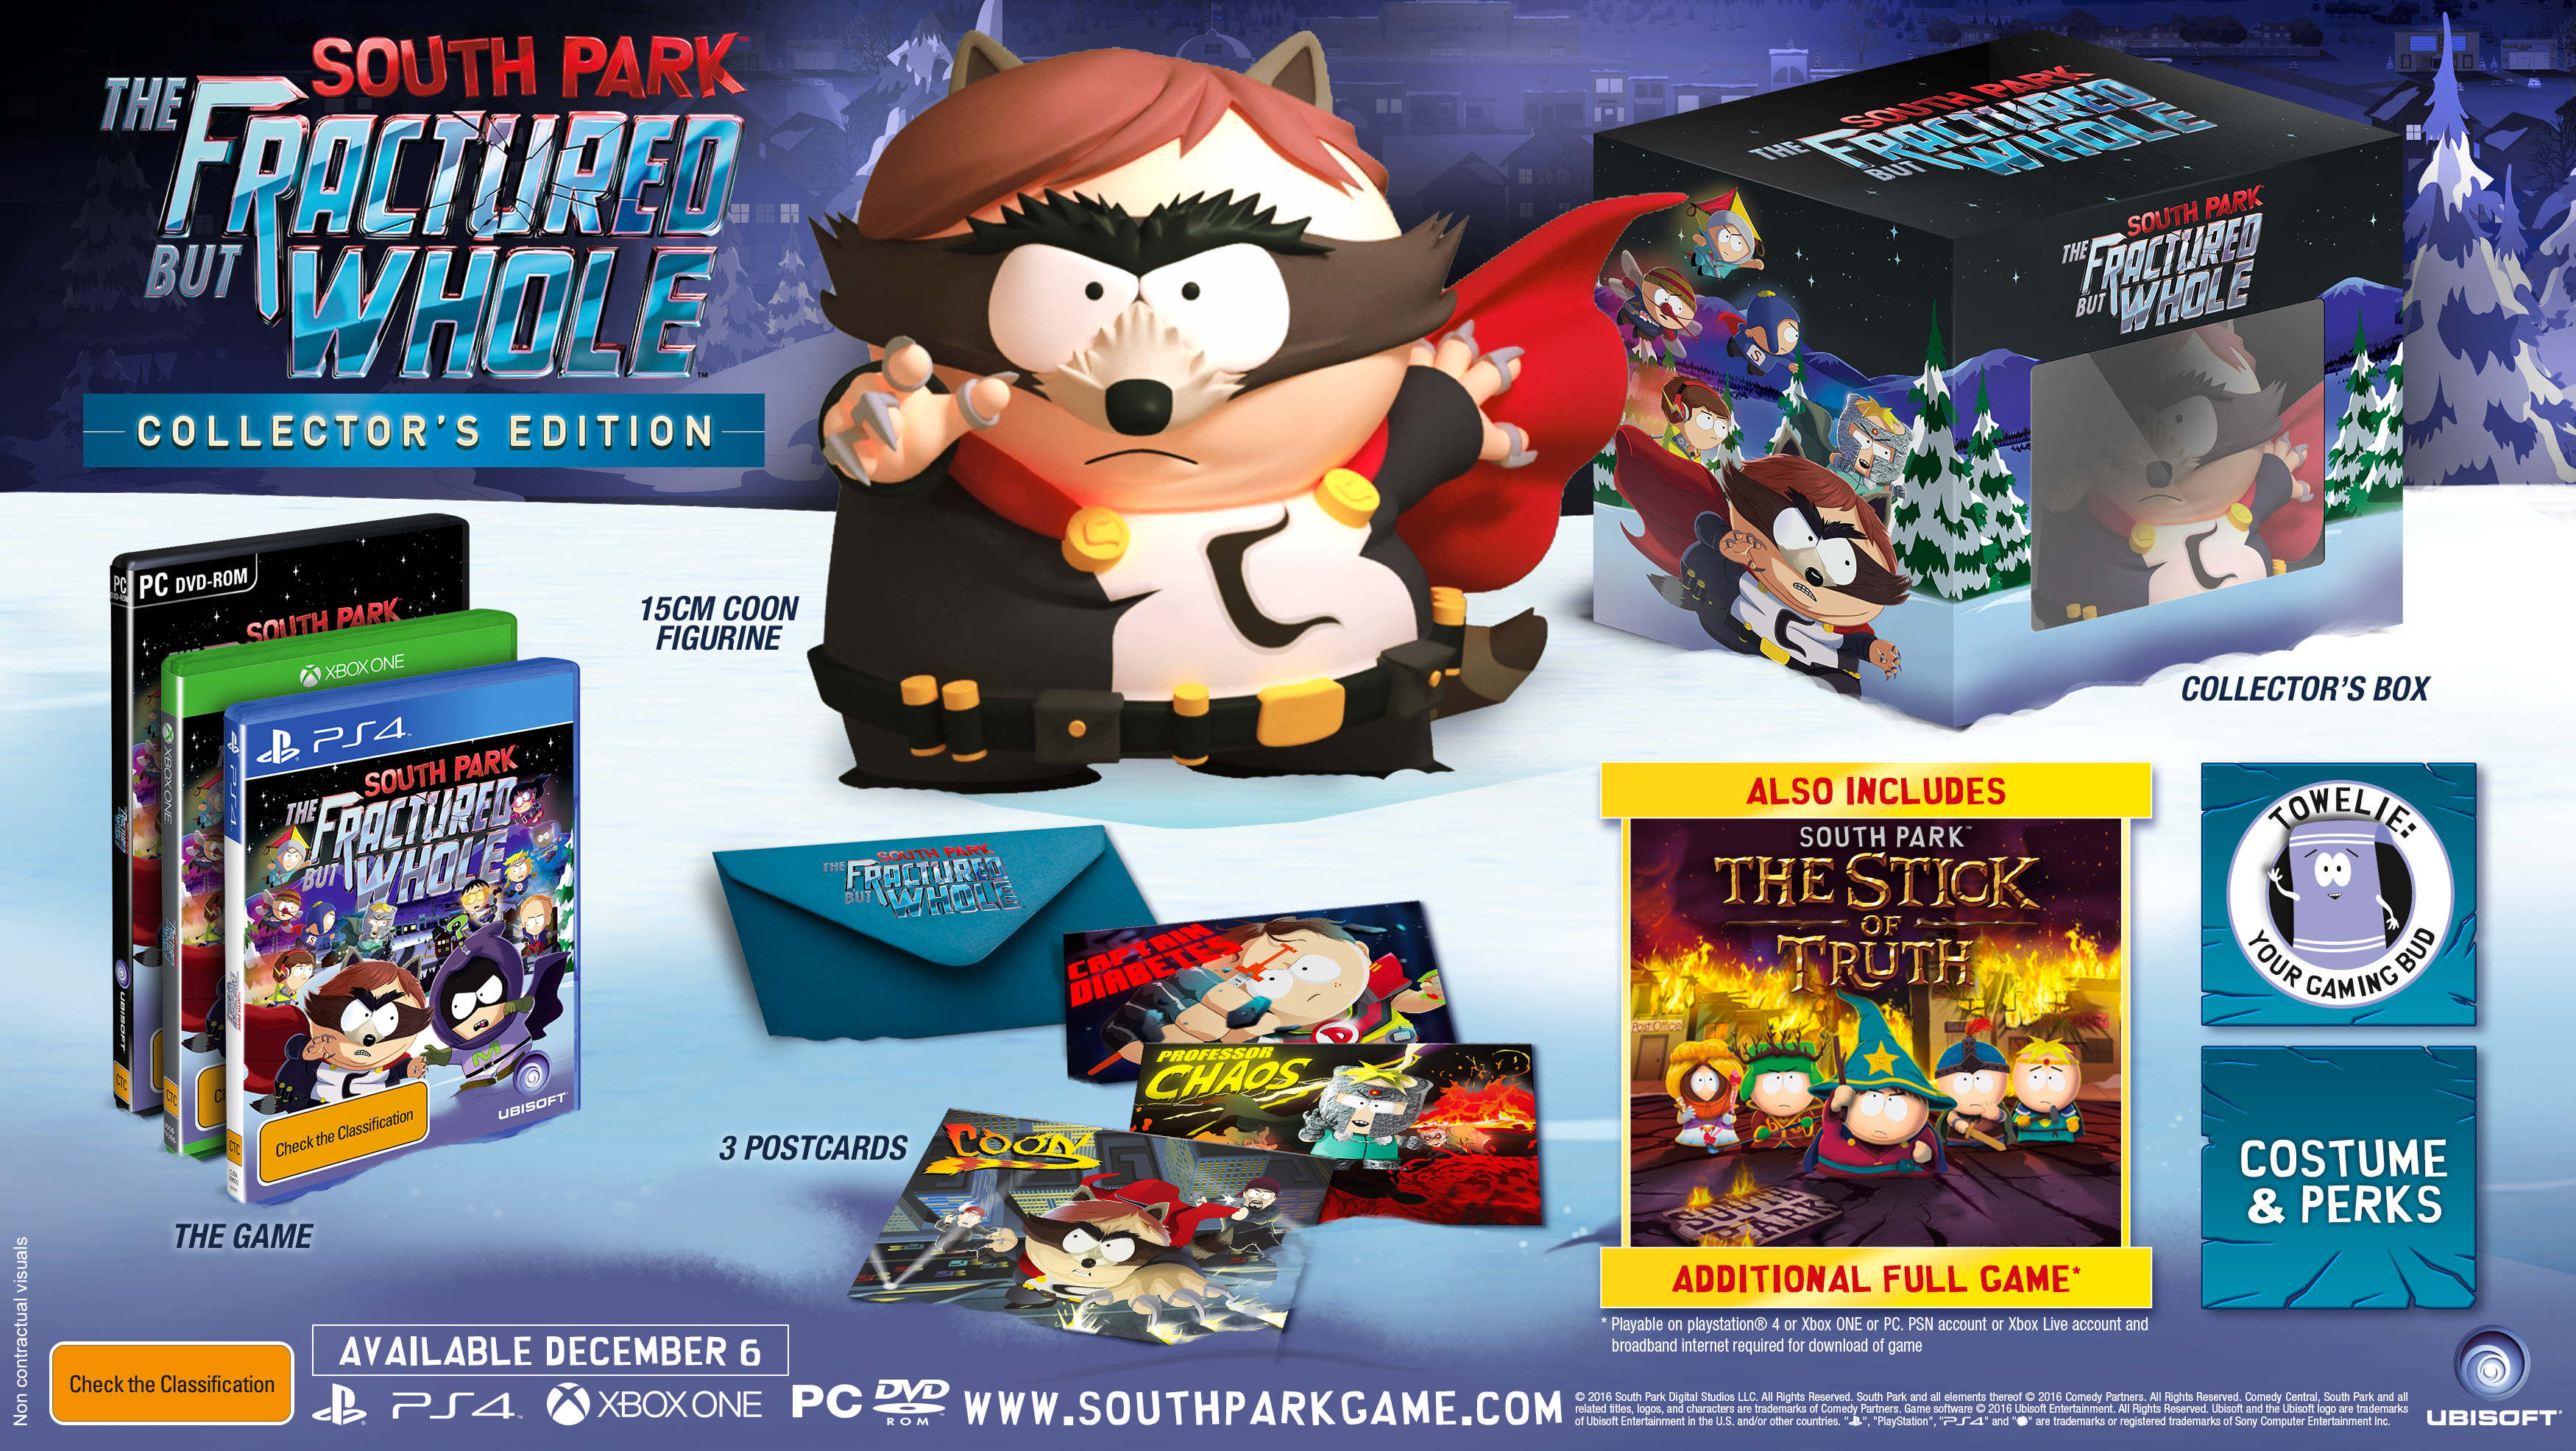 SPFBW mock collector e3 160613 230pm ANZ 1465857030 E3 2016: South Park: The Fractured But Whole Dated